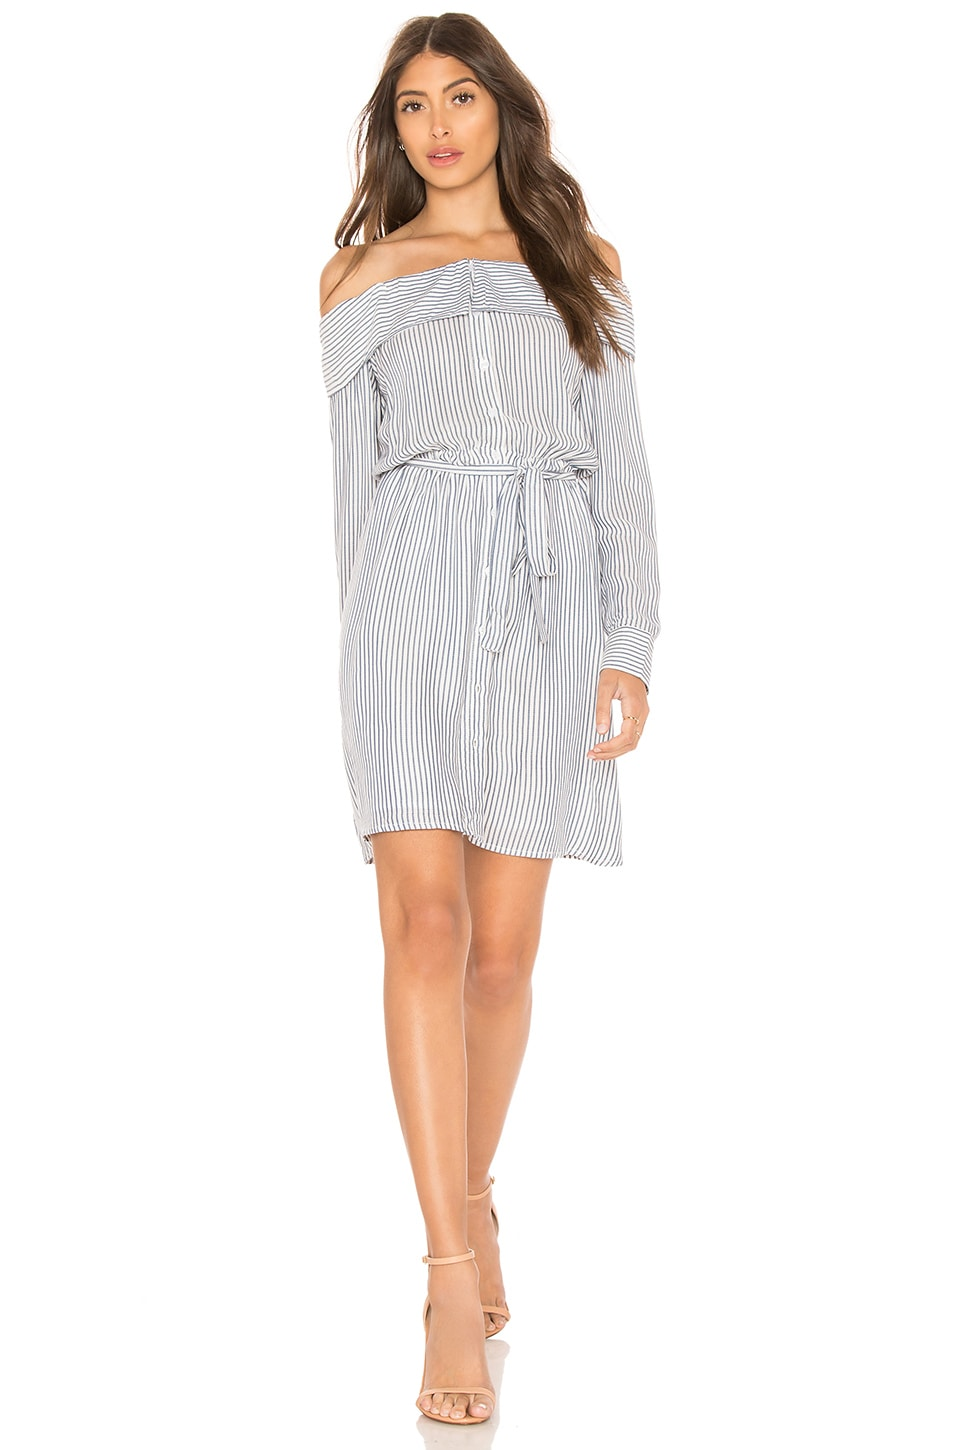 Bardot Sienna Shirt Dress in Blue & White